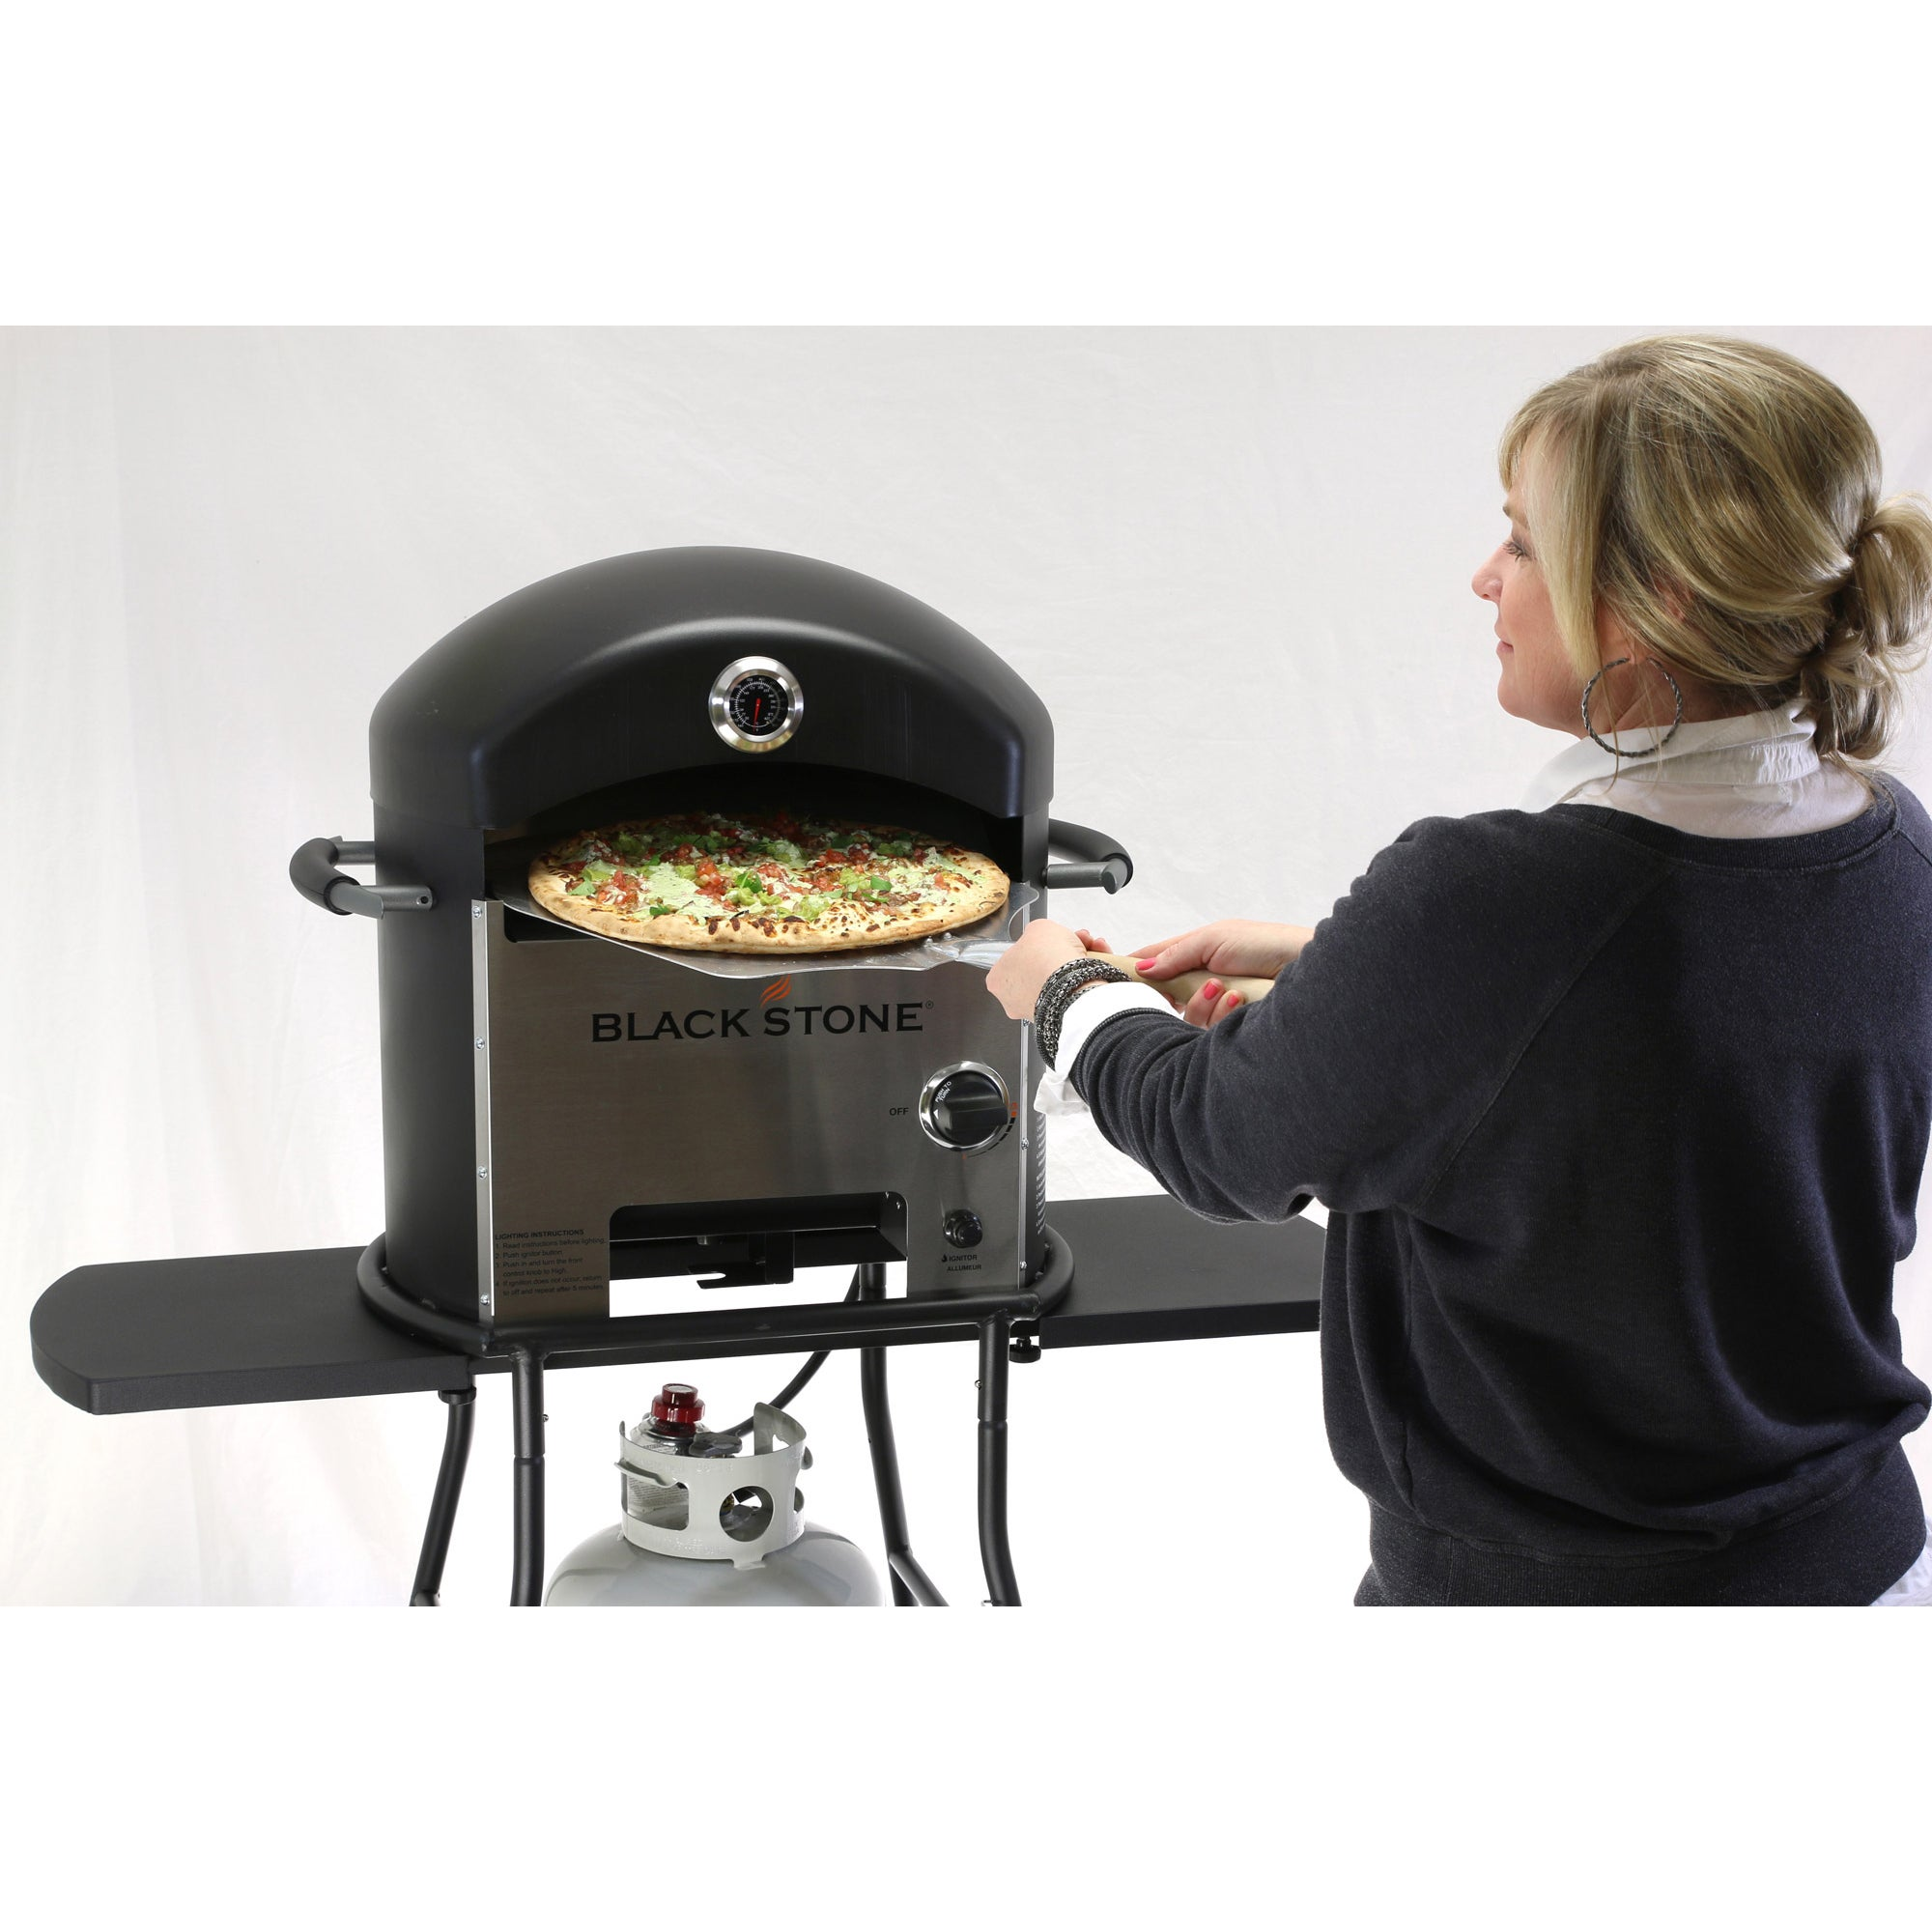 Blackstone 1575 Patio Pizza Oven   Free Shipping Today   Overstock    16099770